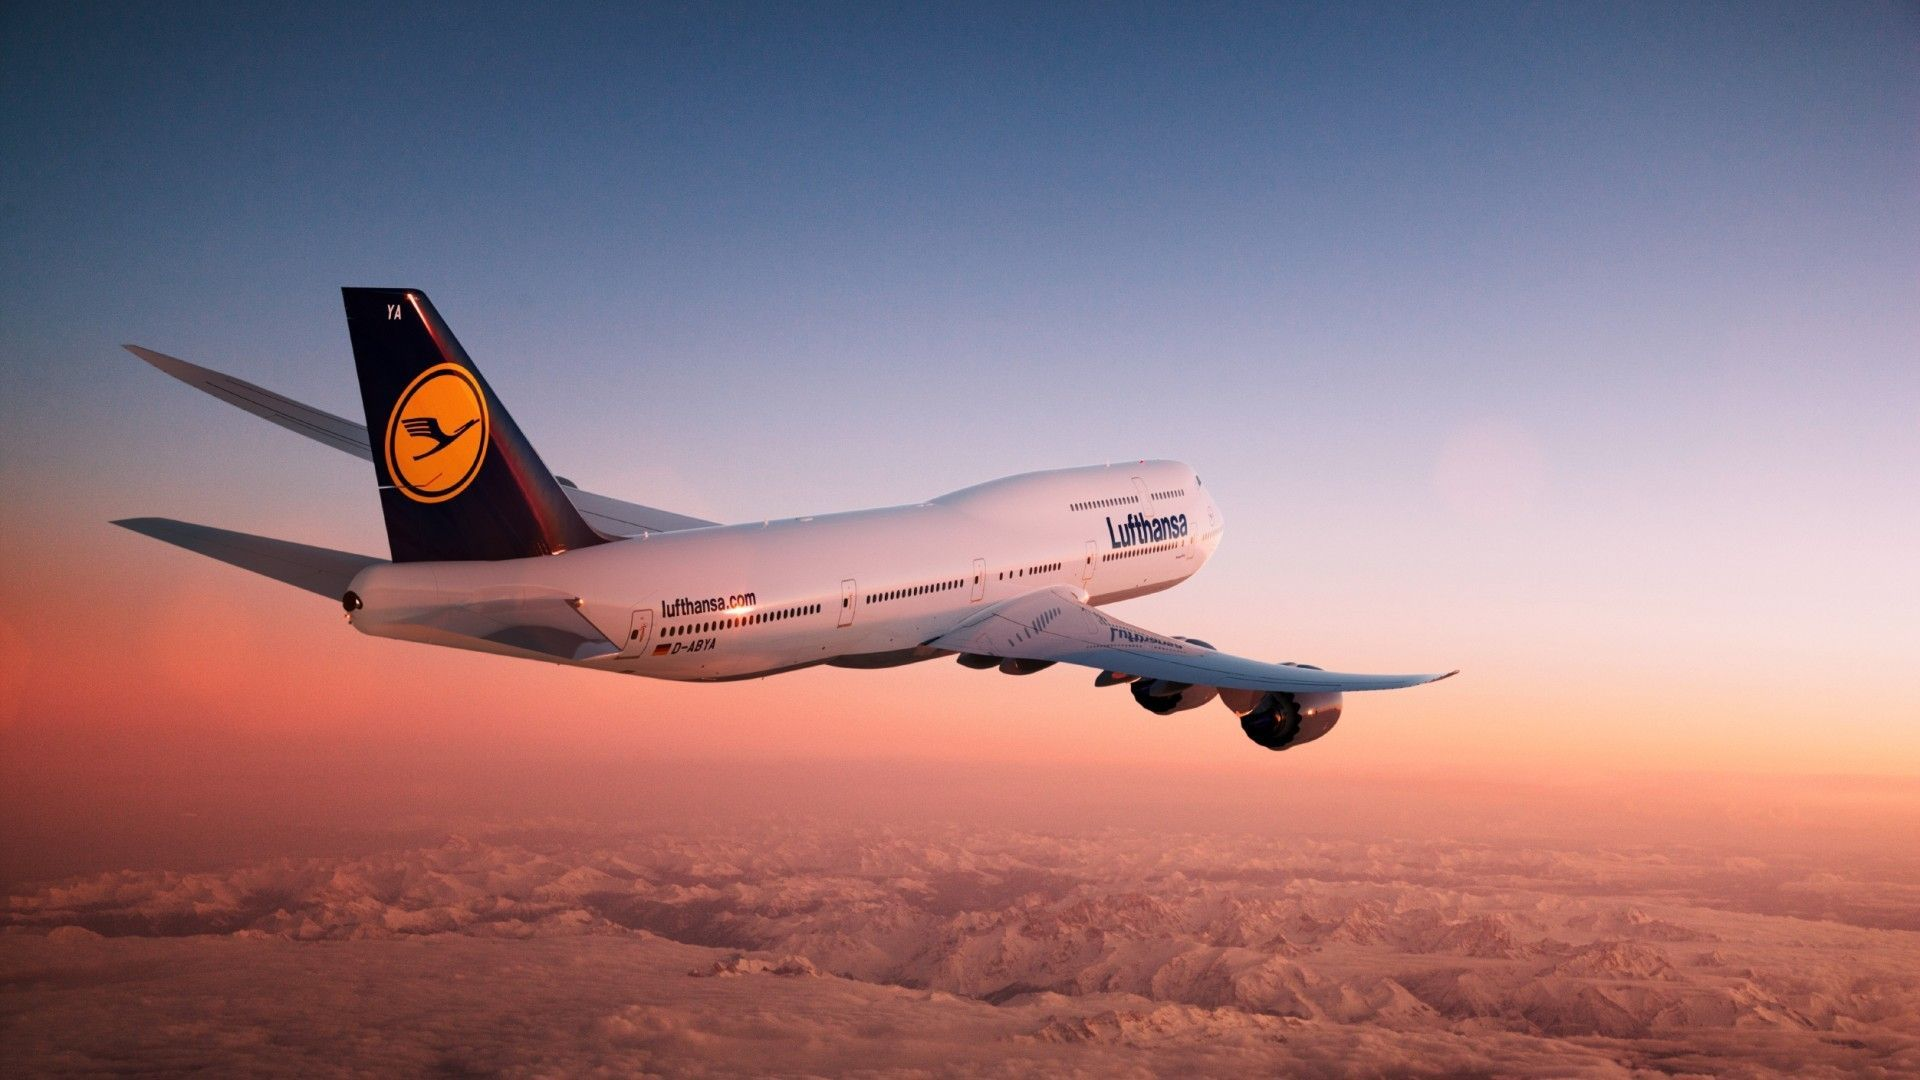 Boeing 747 Hd Wallpapers Free Download Aviationquoteslove Boeing 747 Boeing Passenger Planes